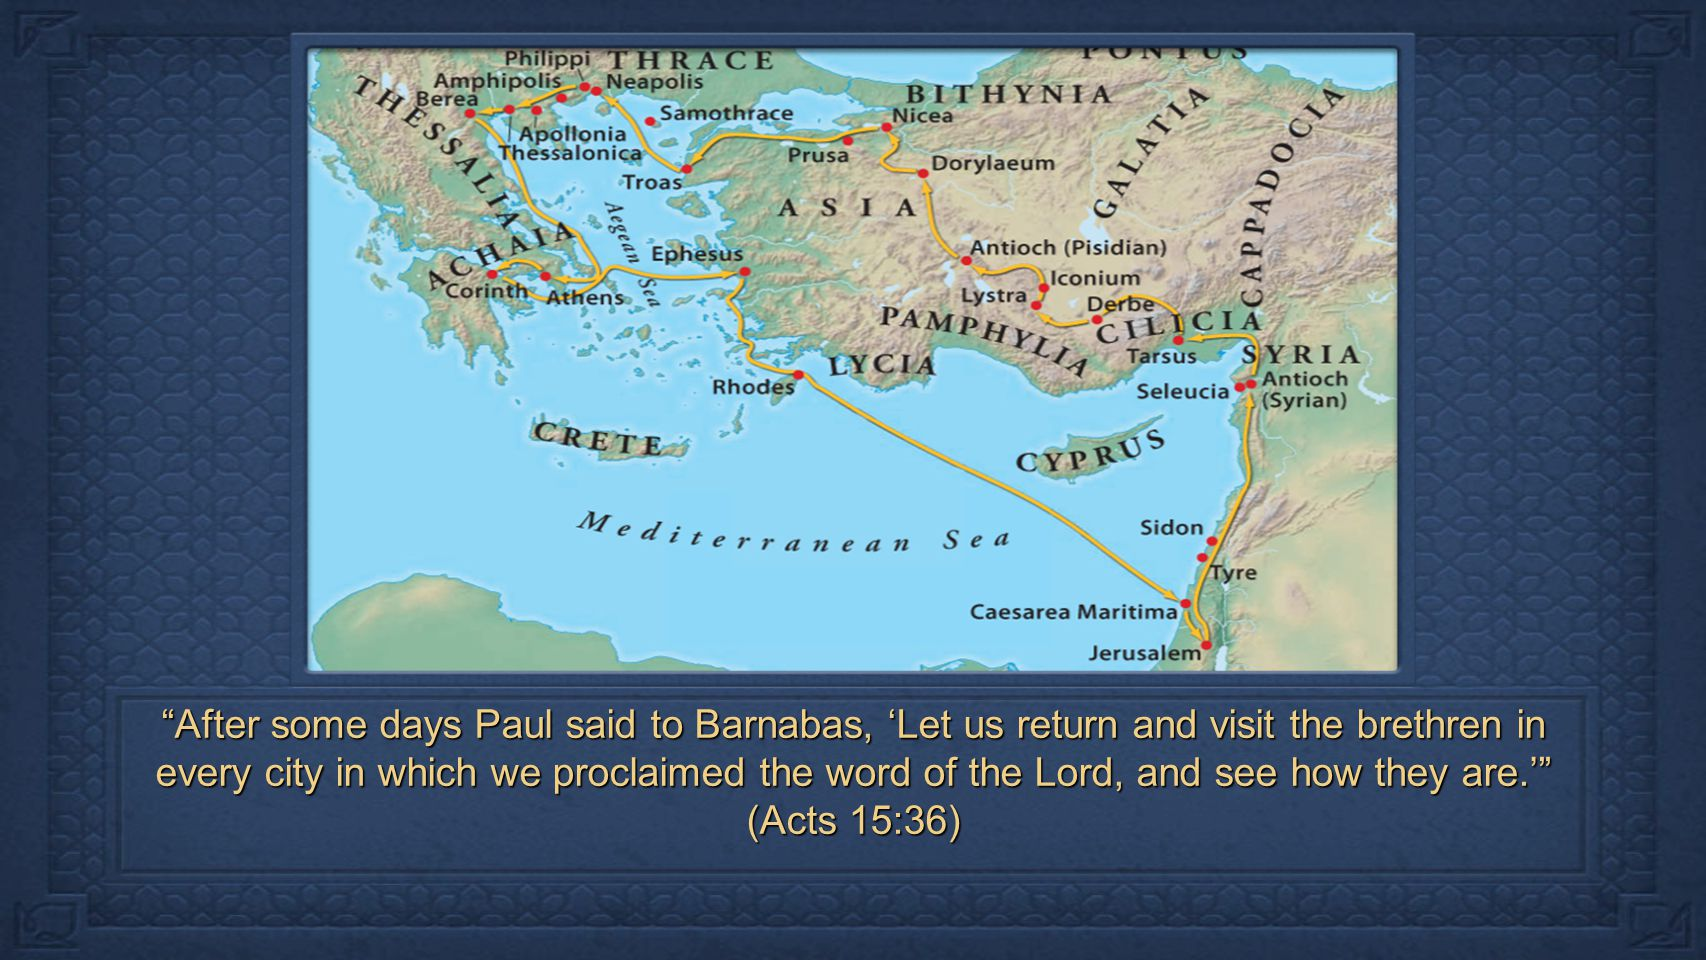 After some days Paul said to Barnabas, 'Let us return and visit the brethren in every city in which we proclaimed the word of the Lord, and see how they are.' (Acts 15:36)